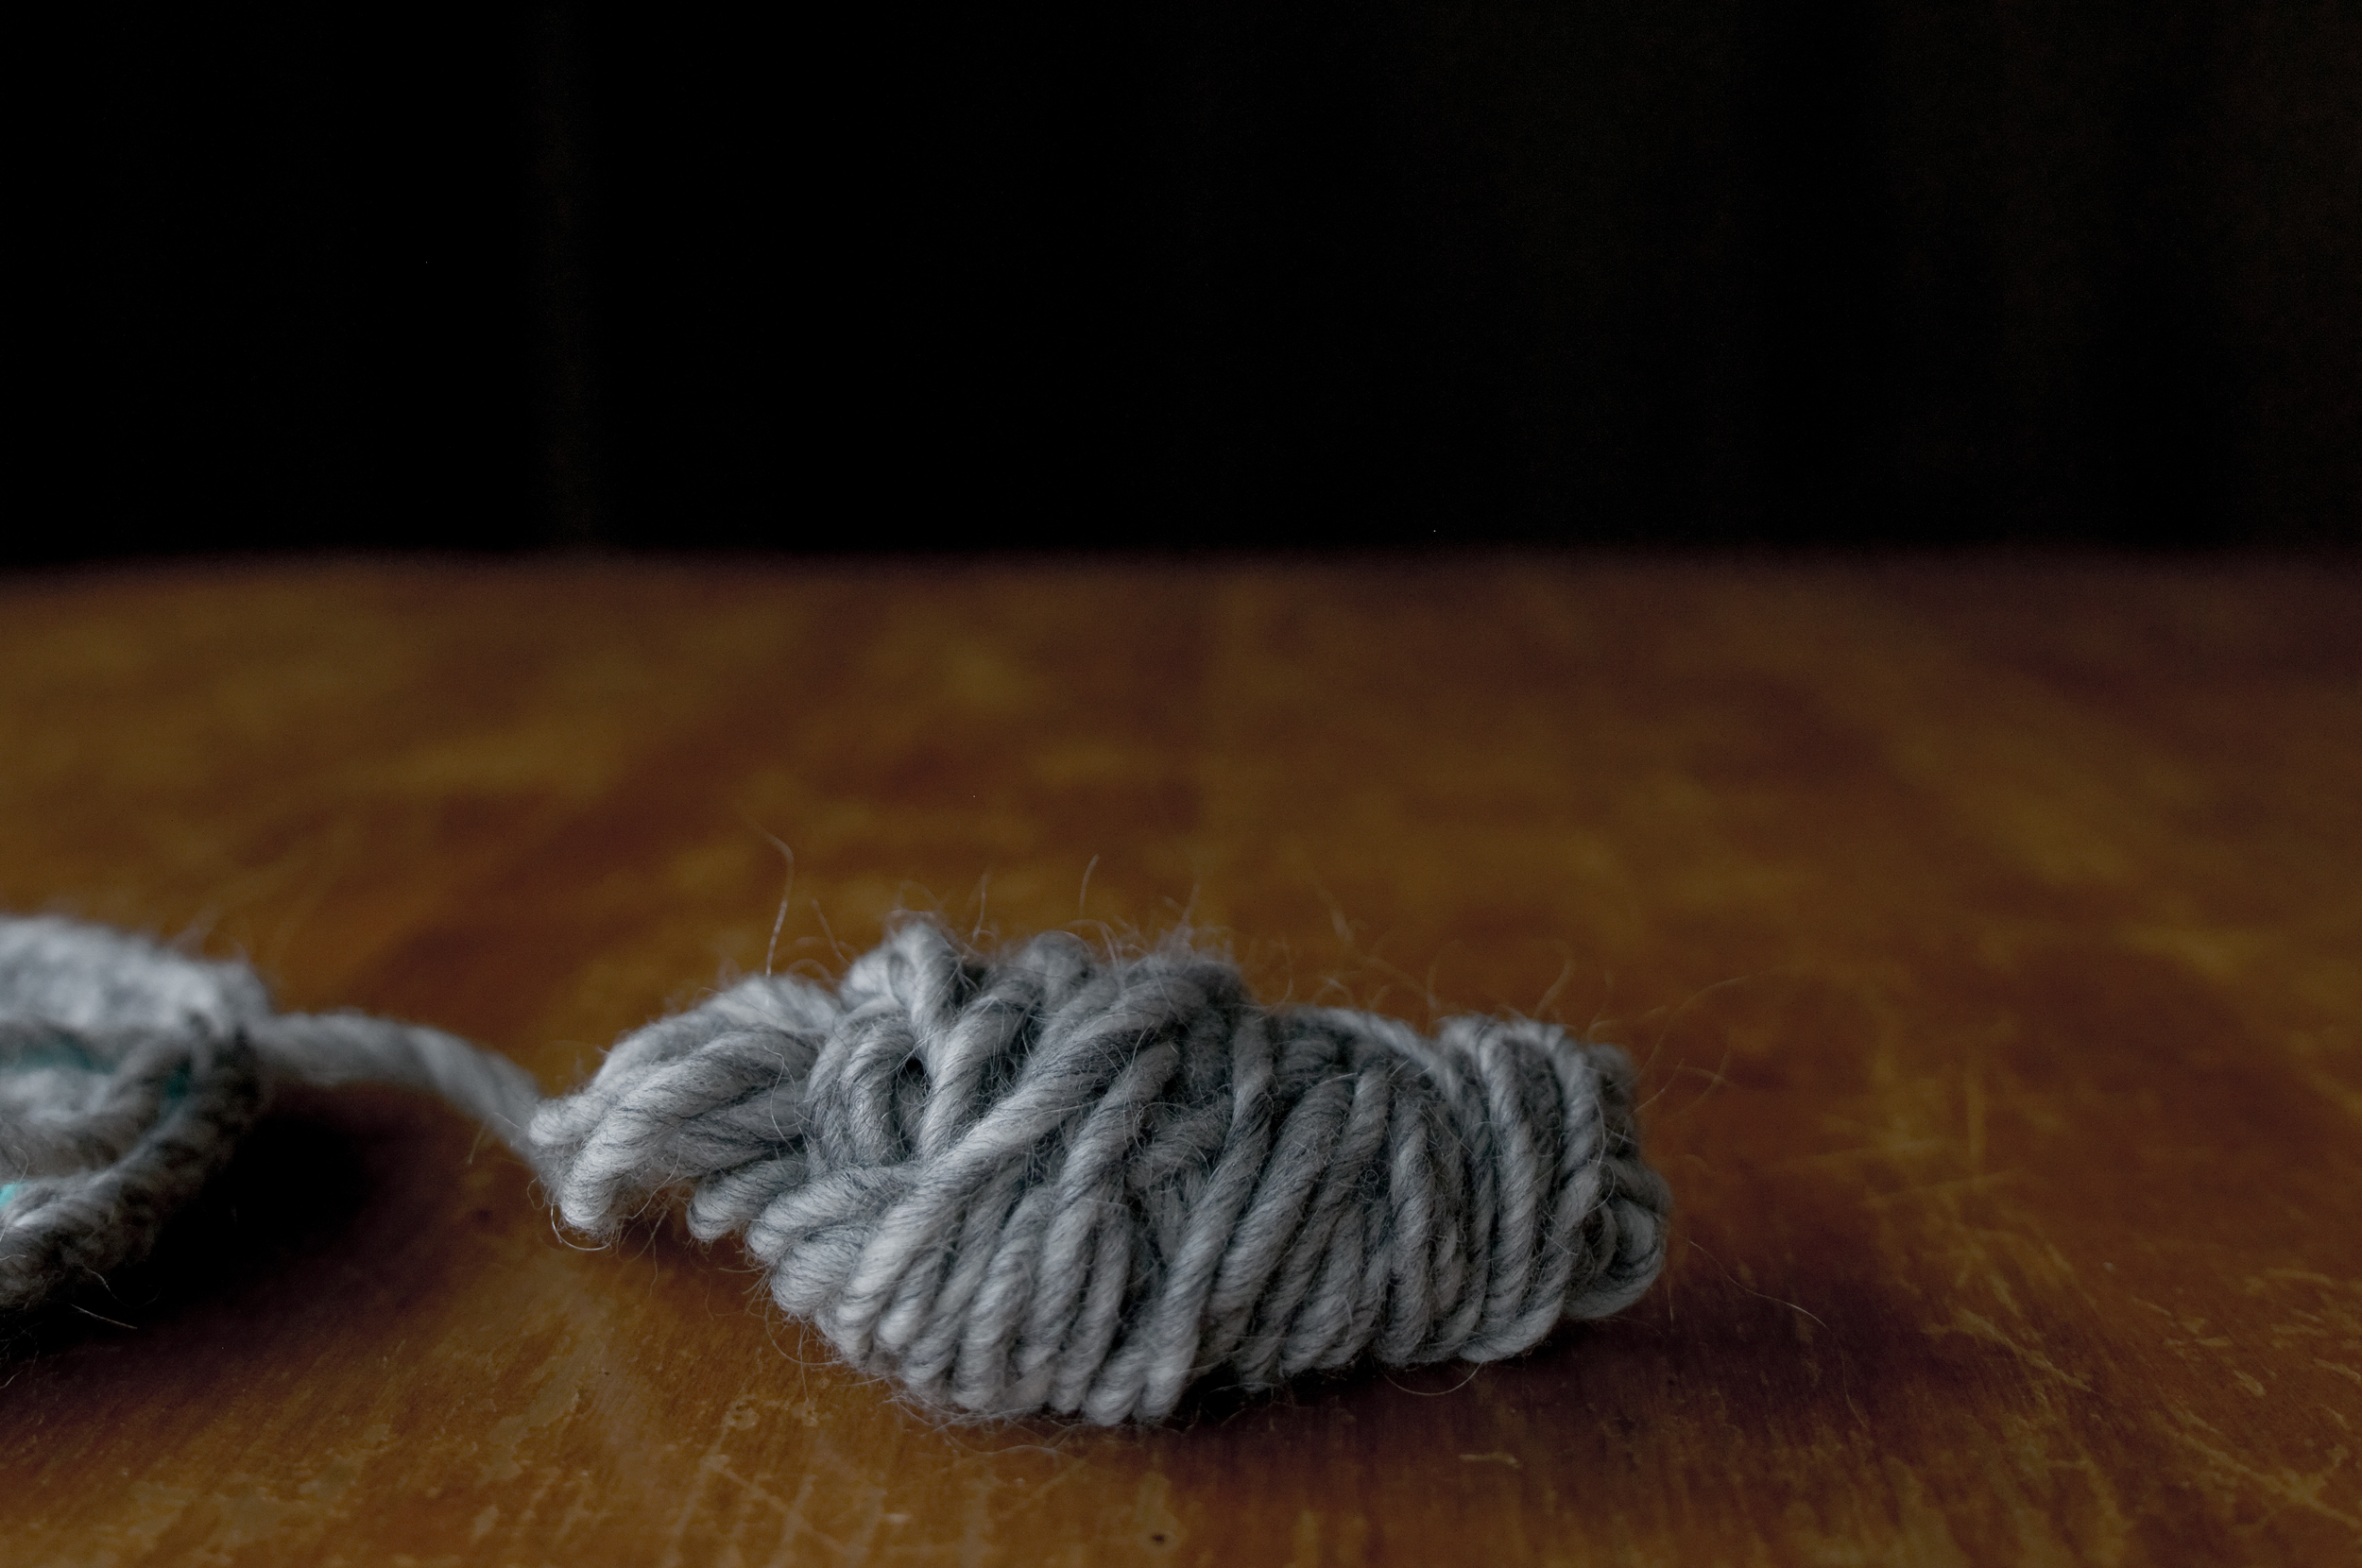 Here's a close-up of the yarn I'm currently using. It's a very thick yarn made by Brown Sheep Company in Nebraska.